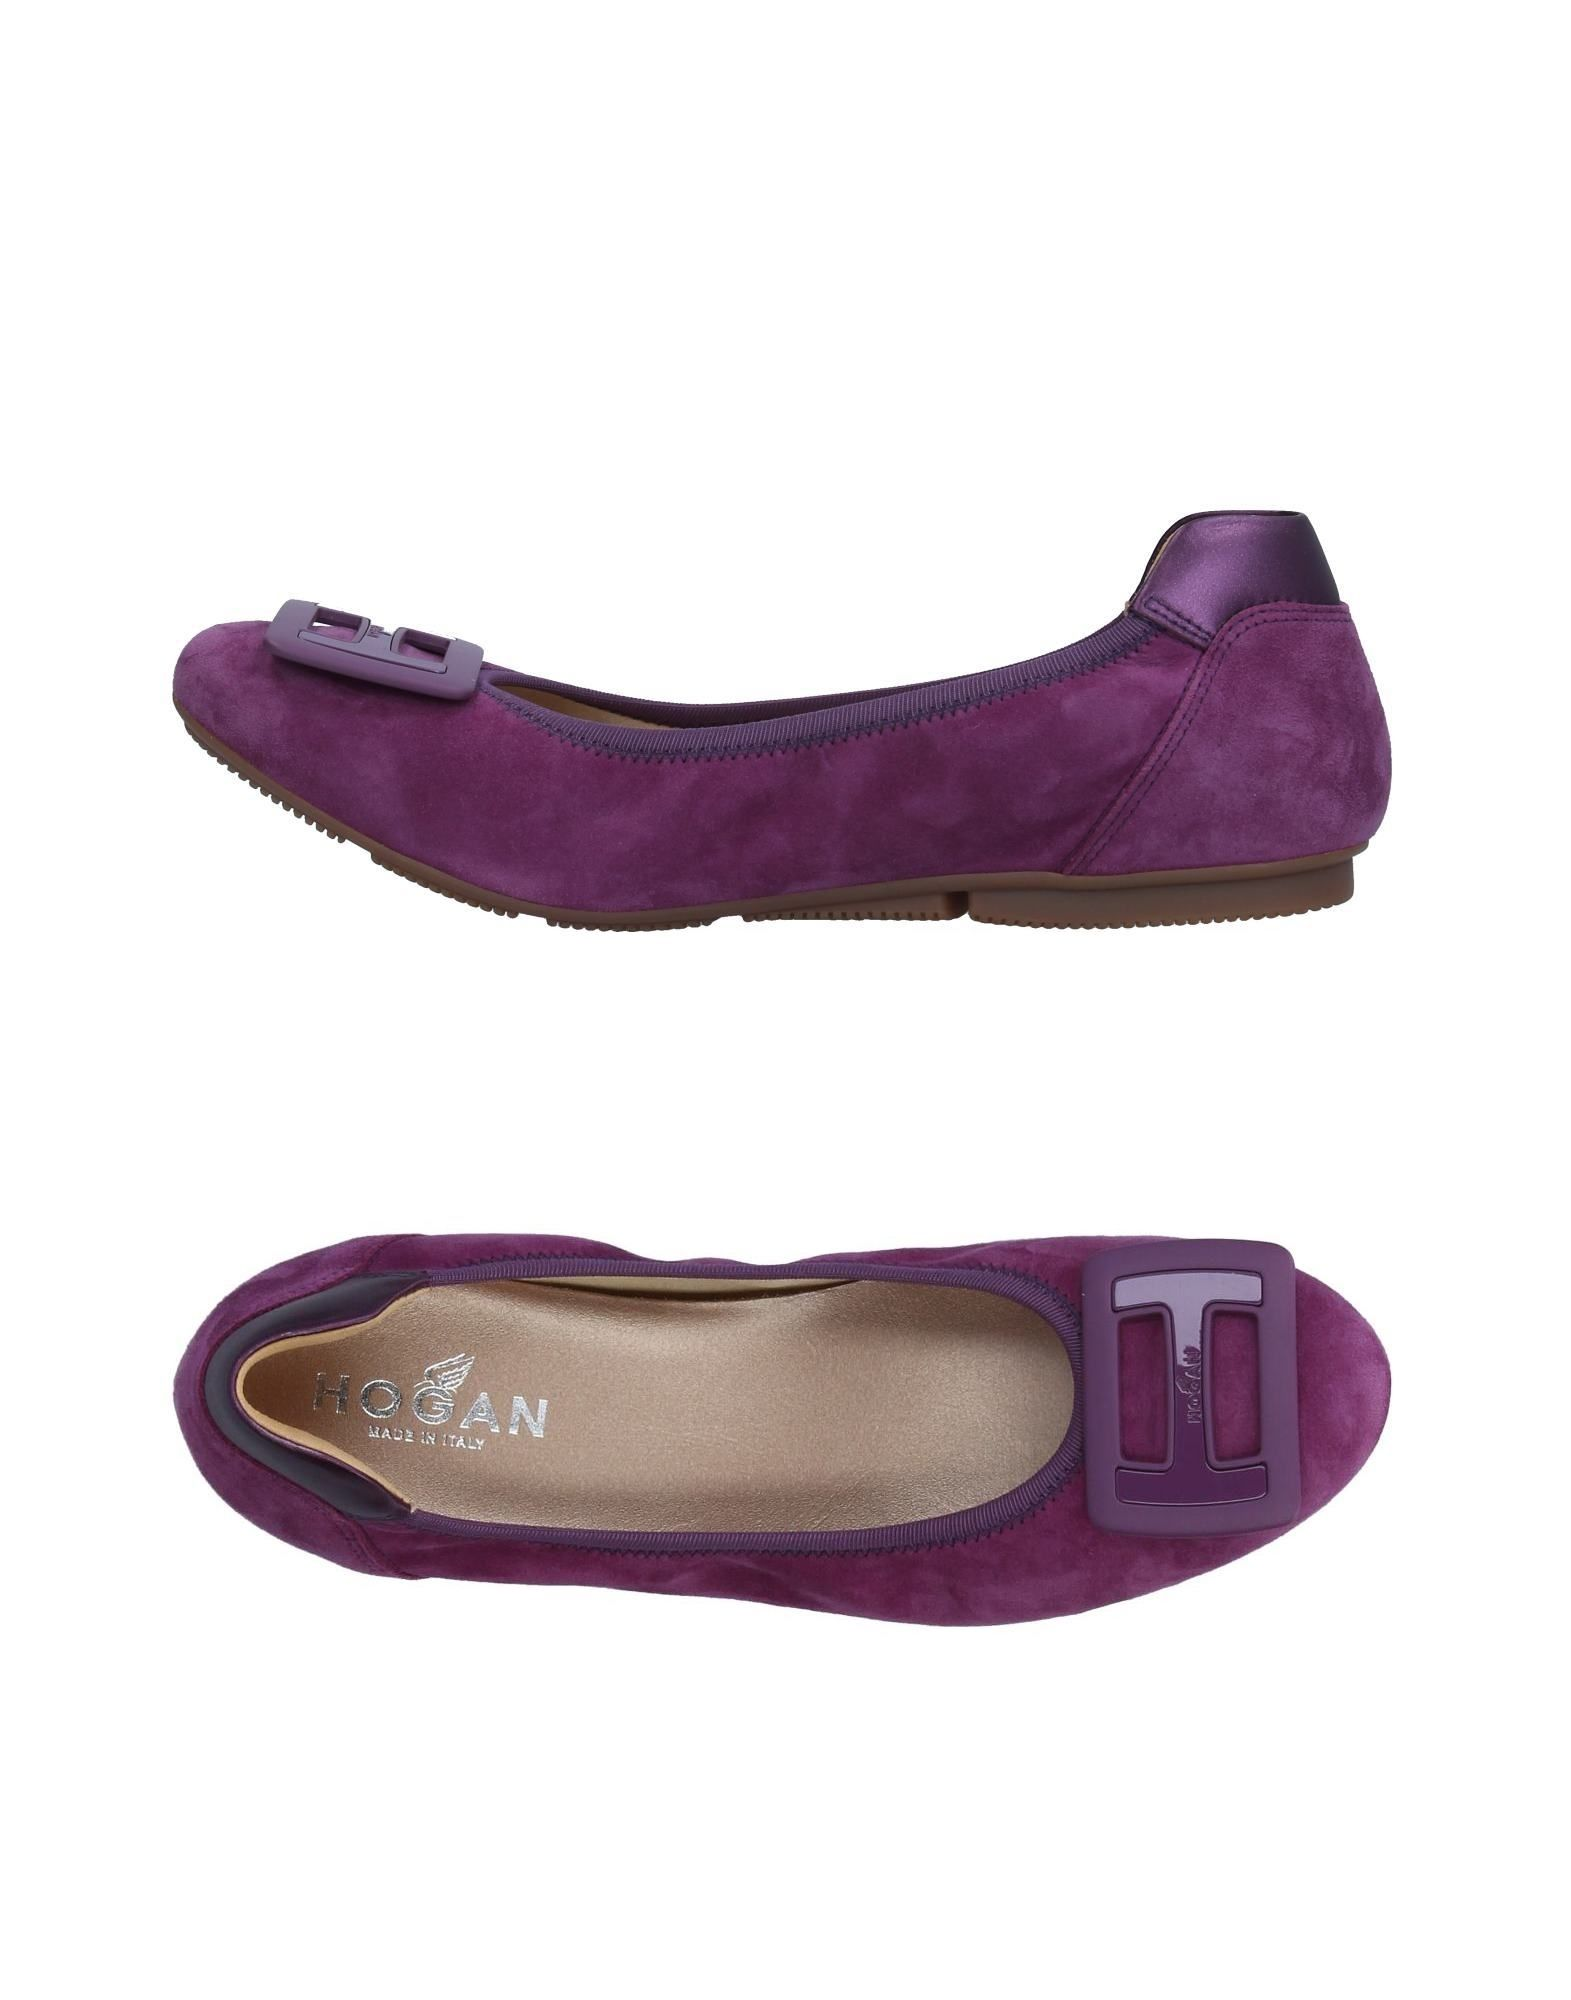 HOGAN Ballet flats. sueded effect, logo, solid color, round toeline, flat, fabric inner, rubber sole, contains non-textile parts of animal origin. Soft Leather